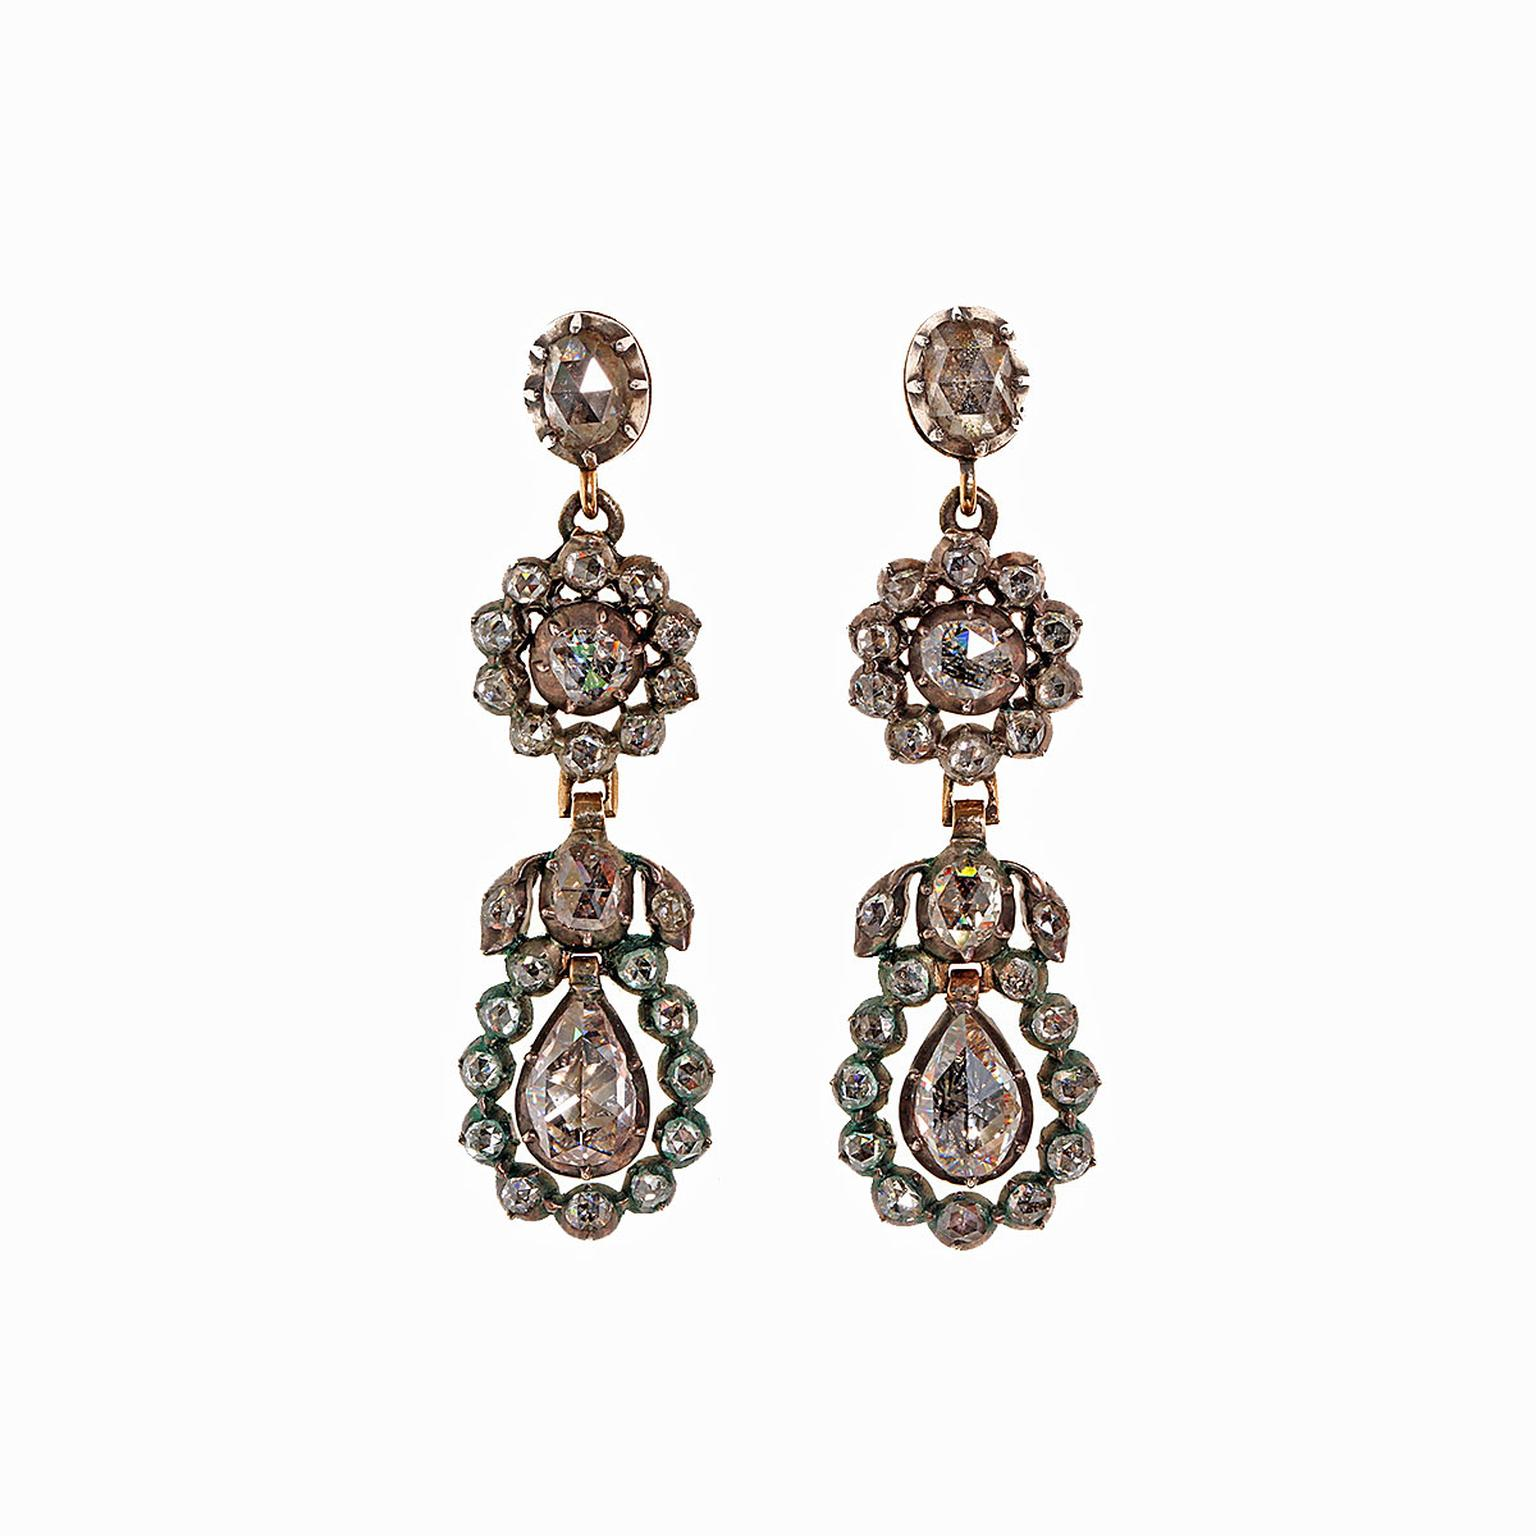 Bell and Bird antique earrings